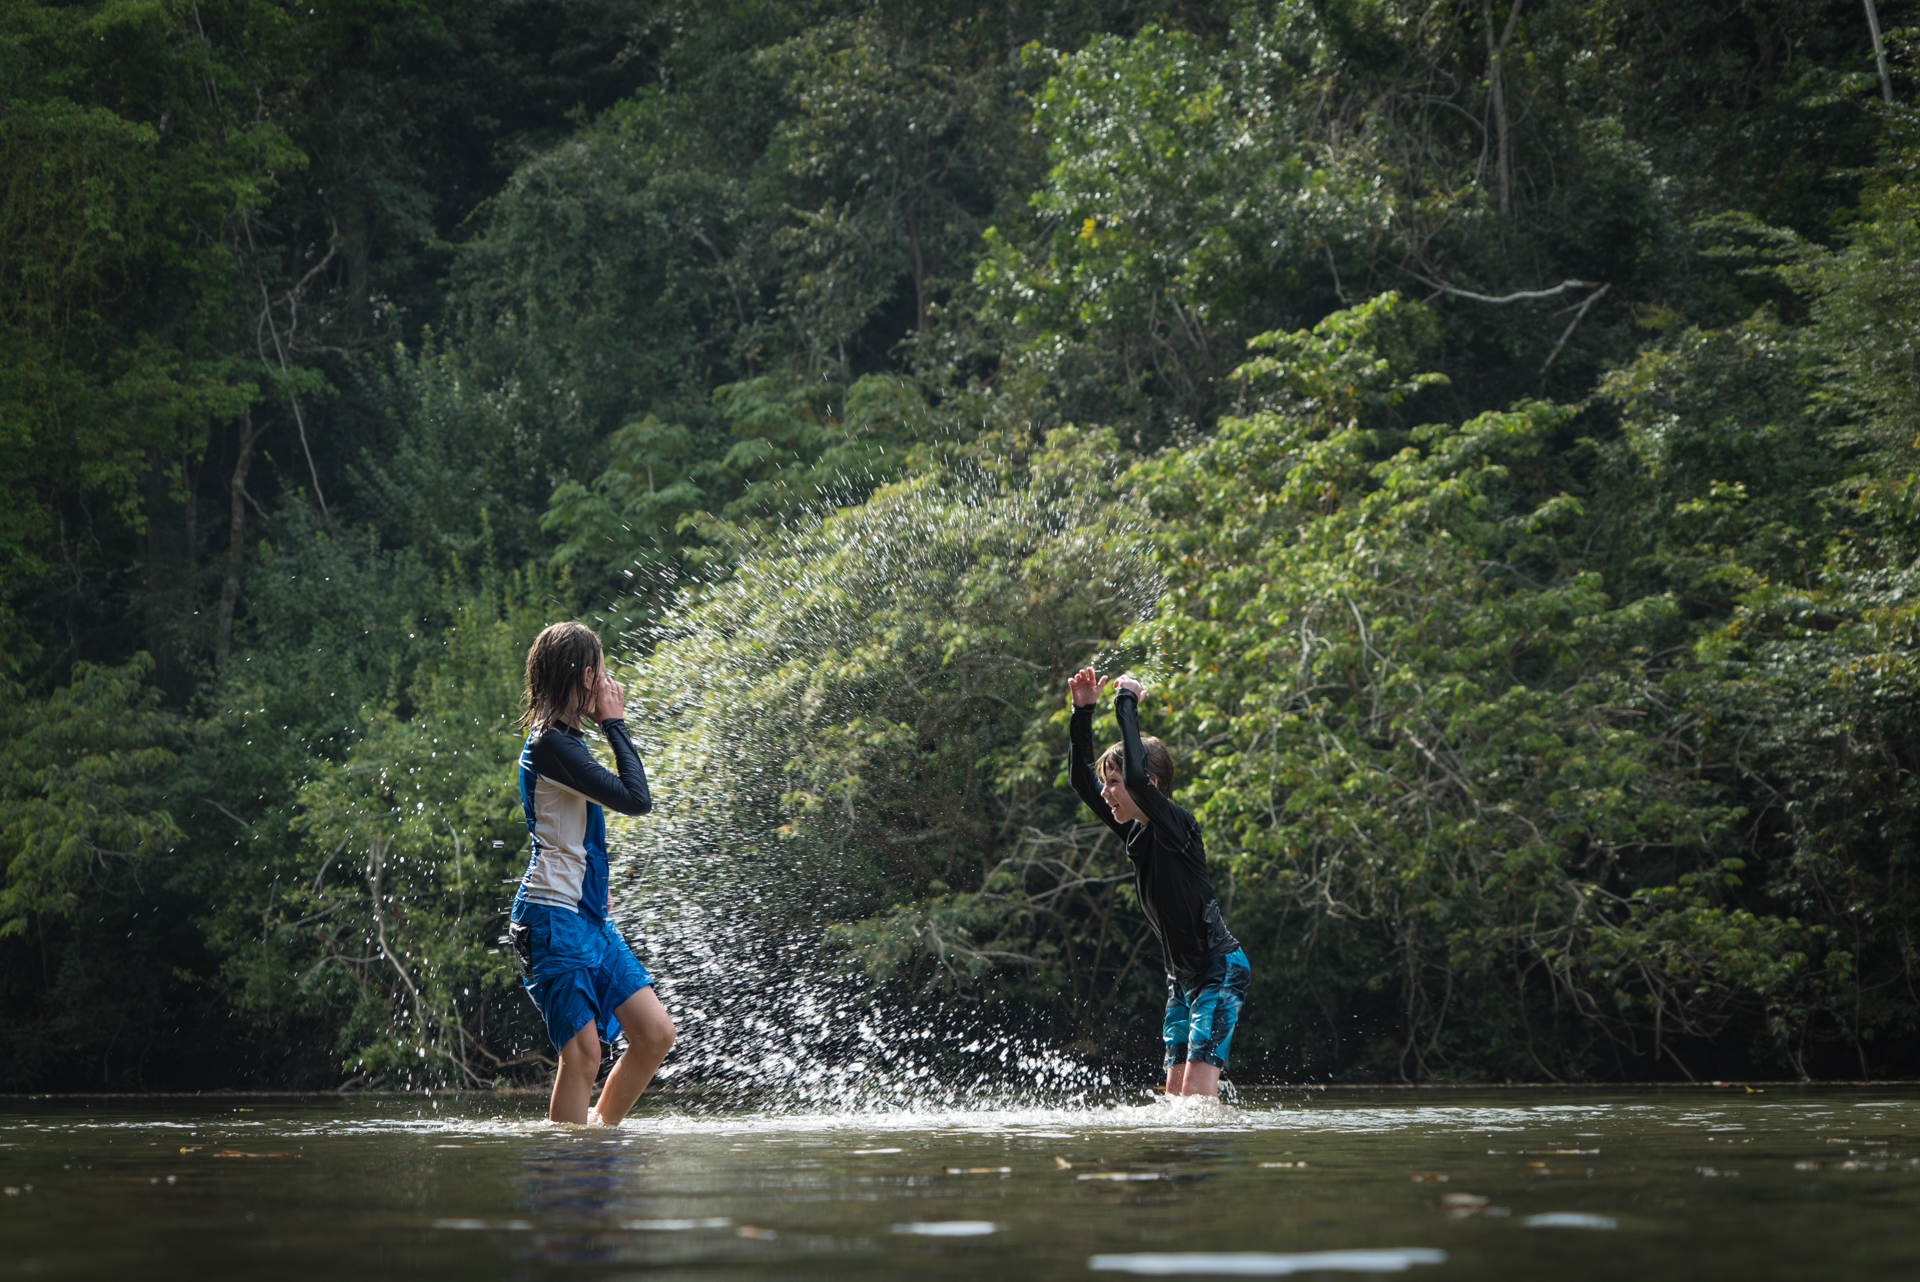 Playing in the Macal River at Jungle Lodges in Belize